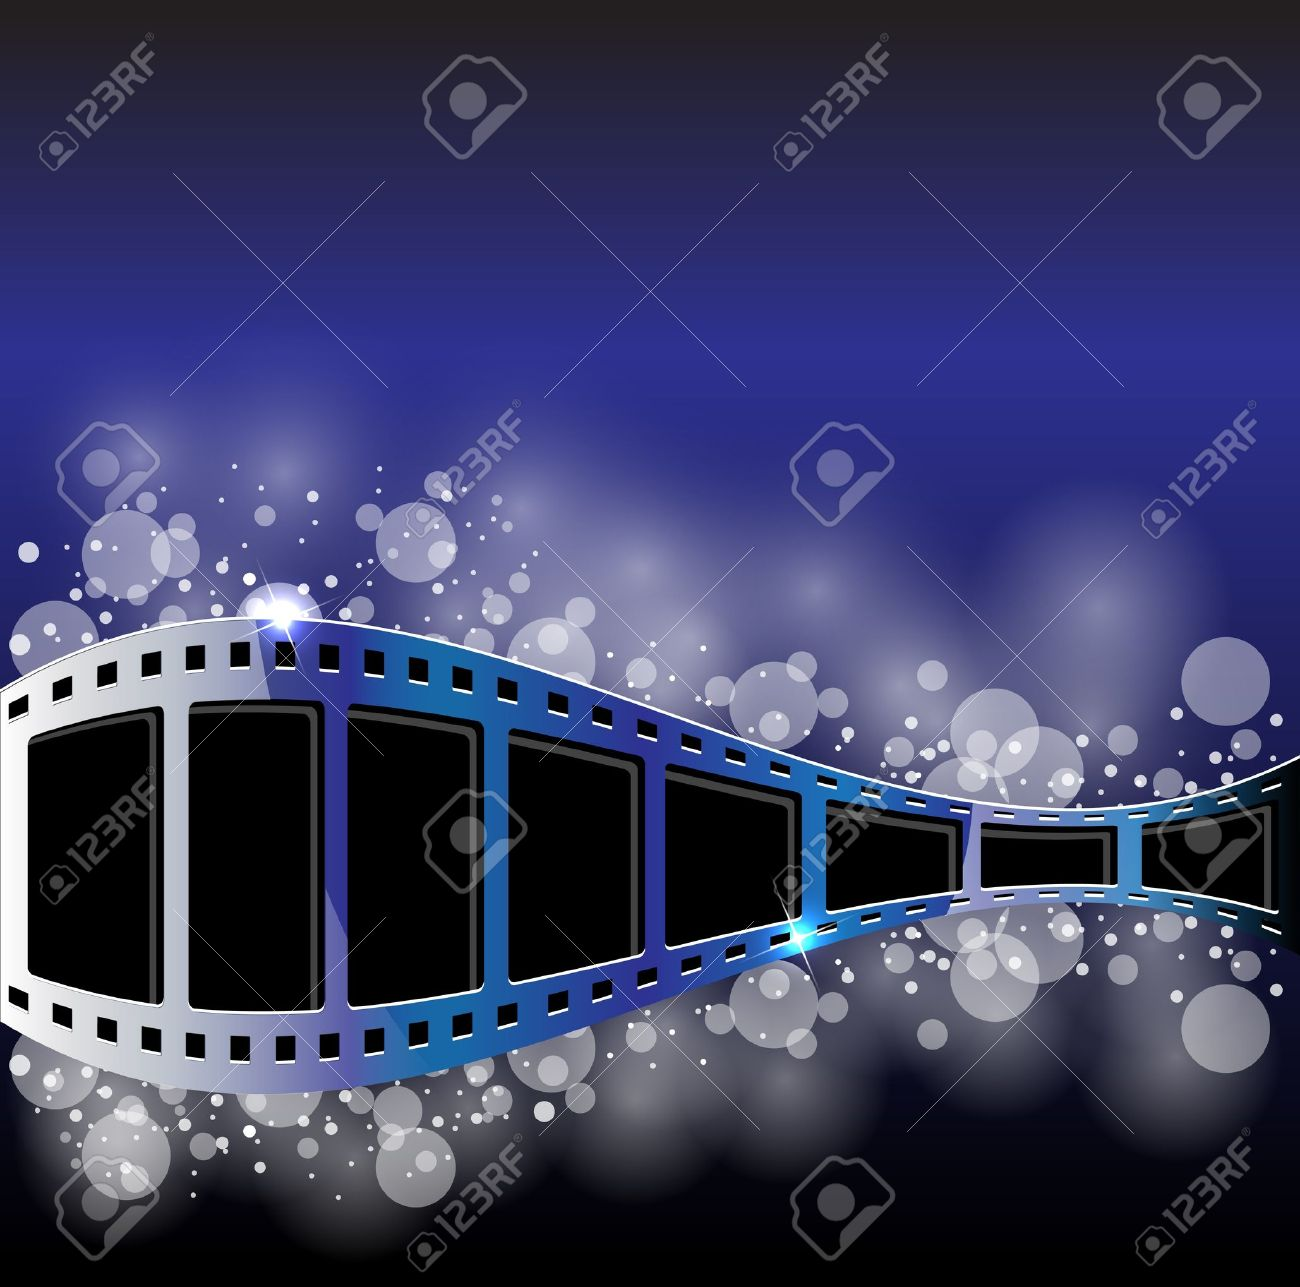 Film Strip Vector Background Royalty Free Cliparts Vectors And